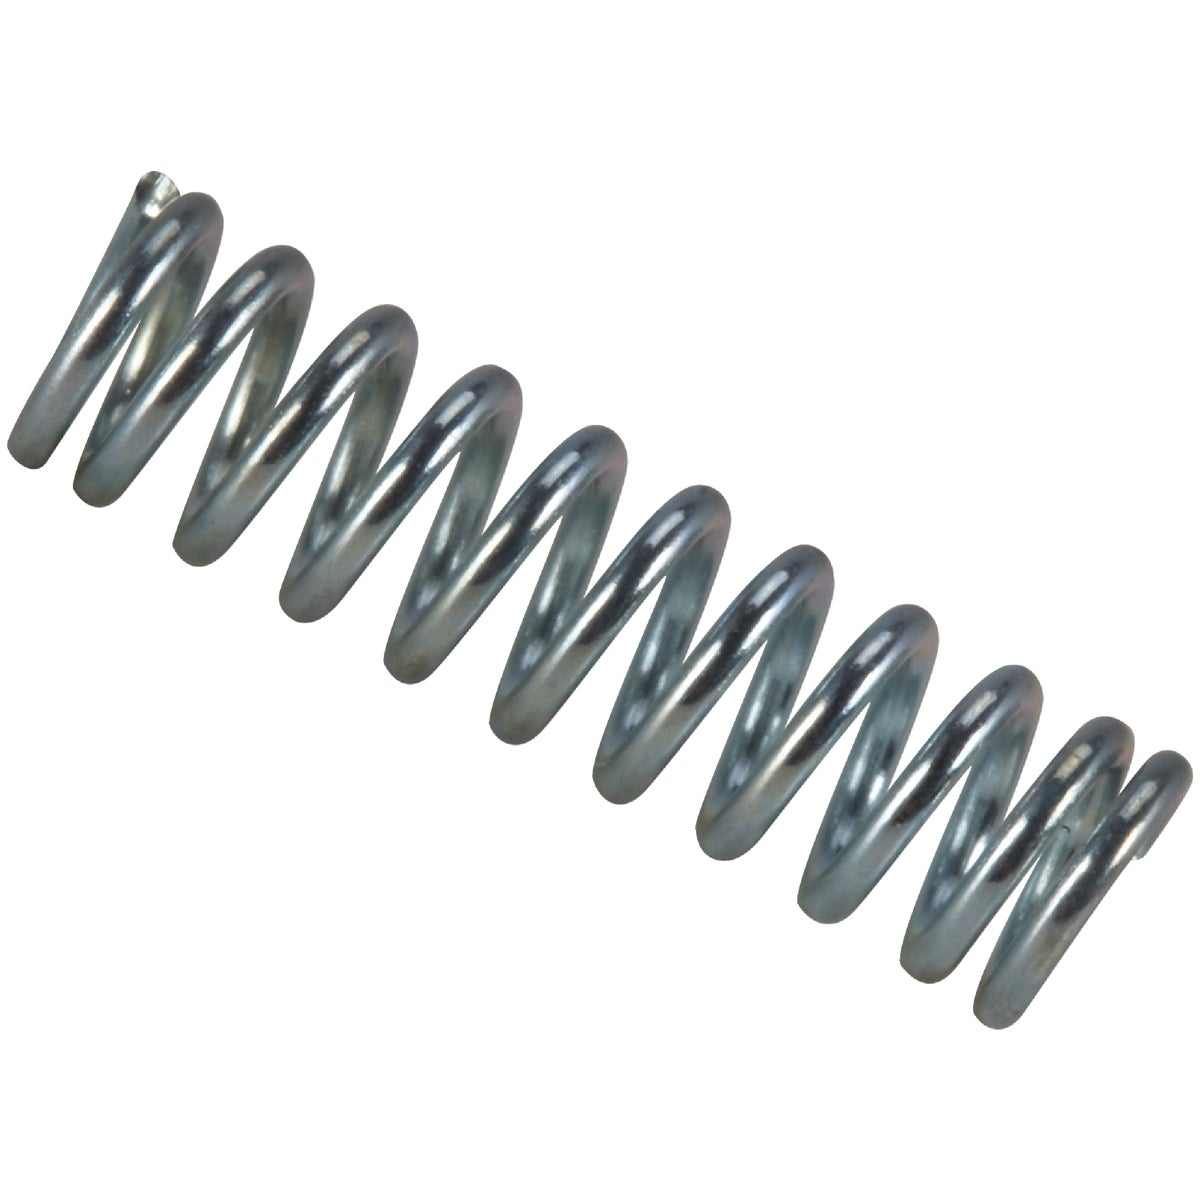 COMPRESSION SPRING - C-874 by Century Spring Corp